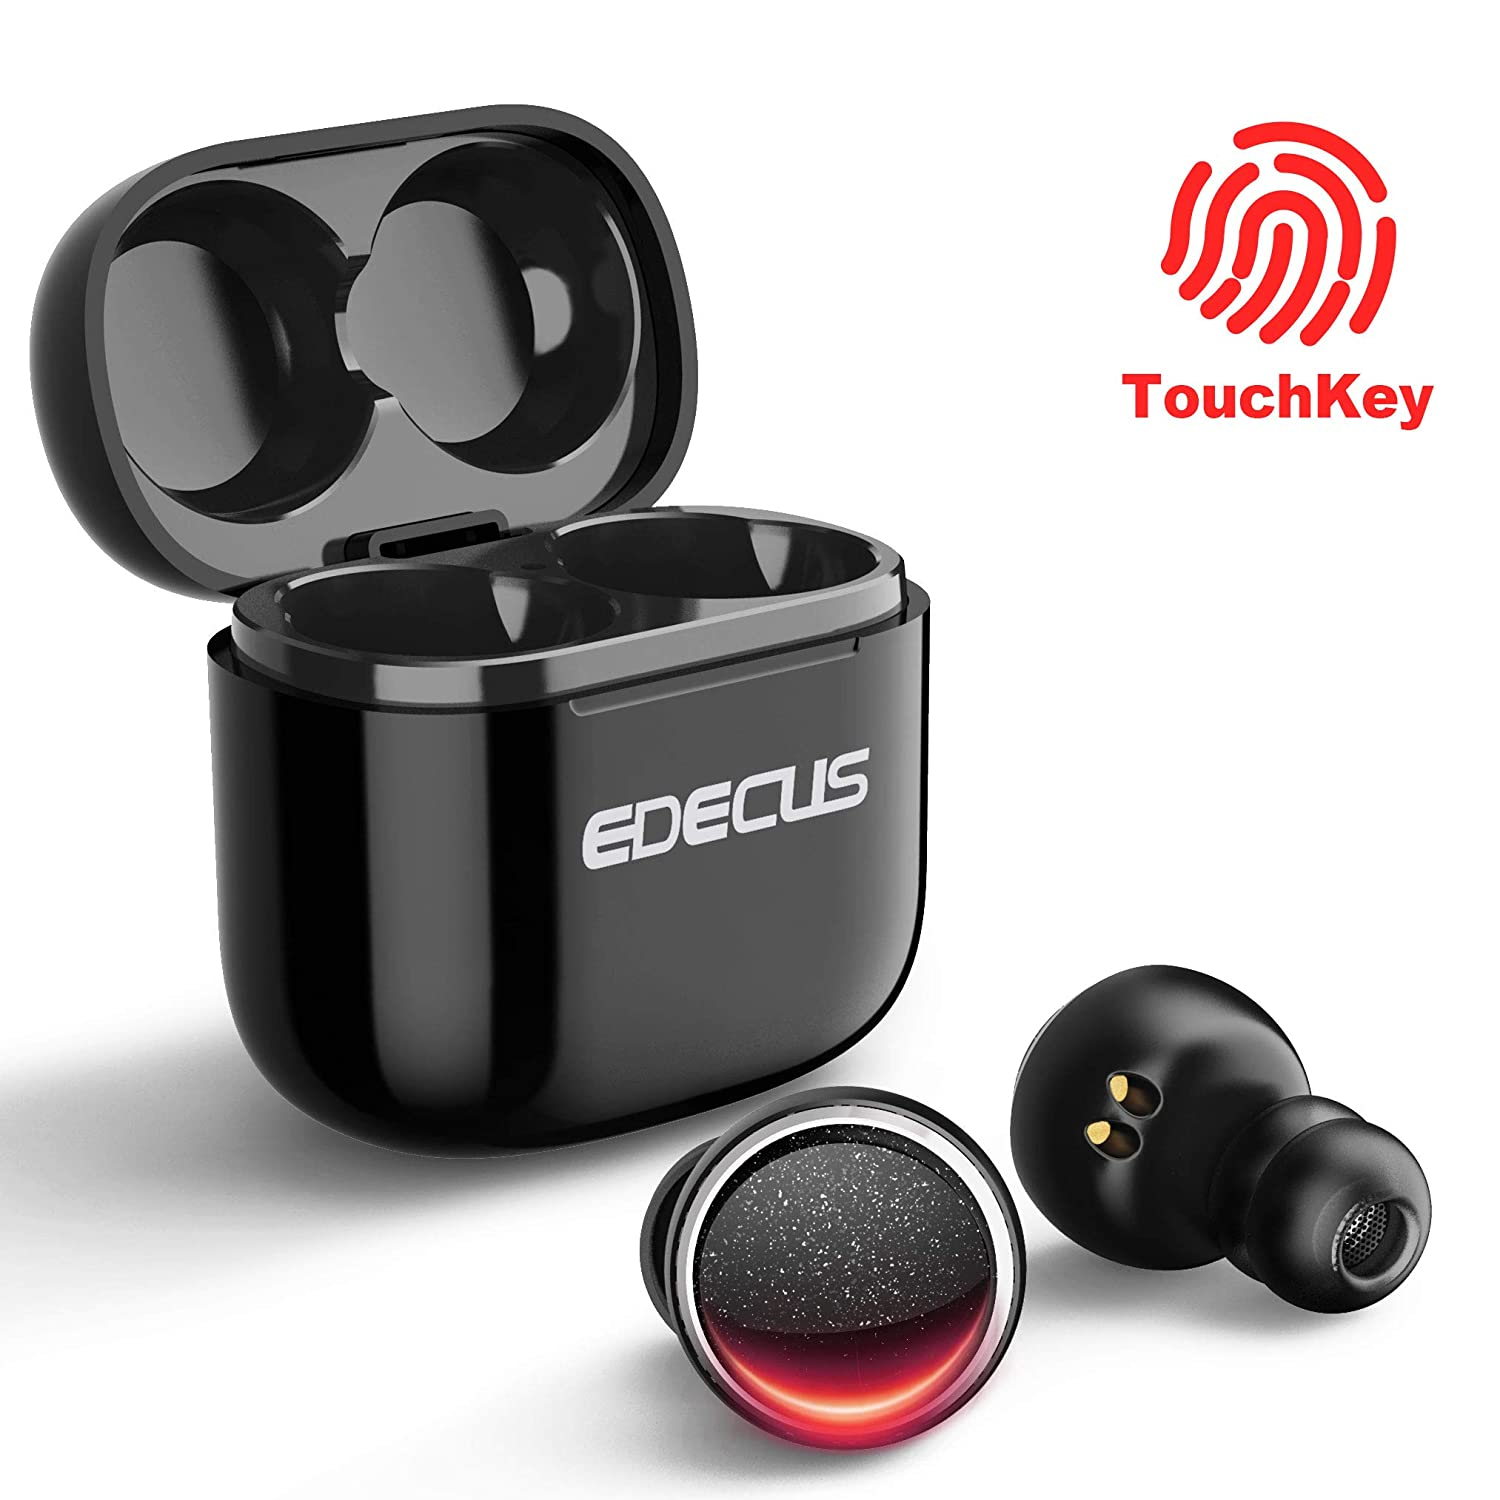 Wireless Earbuds, EDECUS TL2 Bluetooth 5.0 Wireless Earbuds with Touch Control, 25H Playtime, Hi-Fi Bass Stereo, Noise Cancelling, IPX5 Waterproof, Built-in Mic Bluetooth Headphones with Charging Case